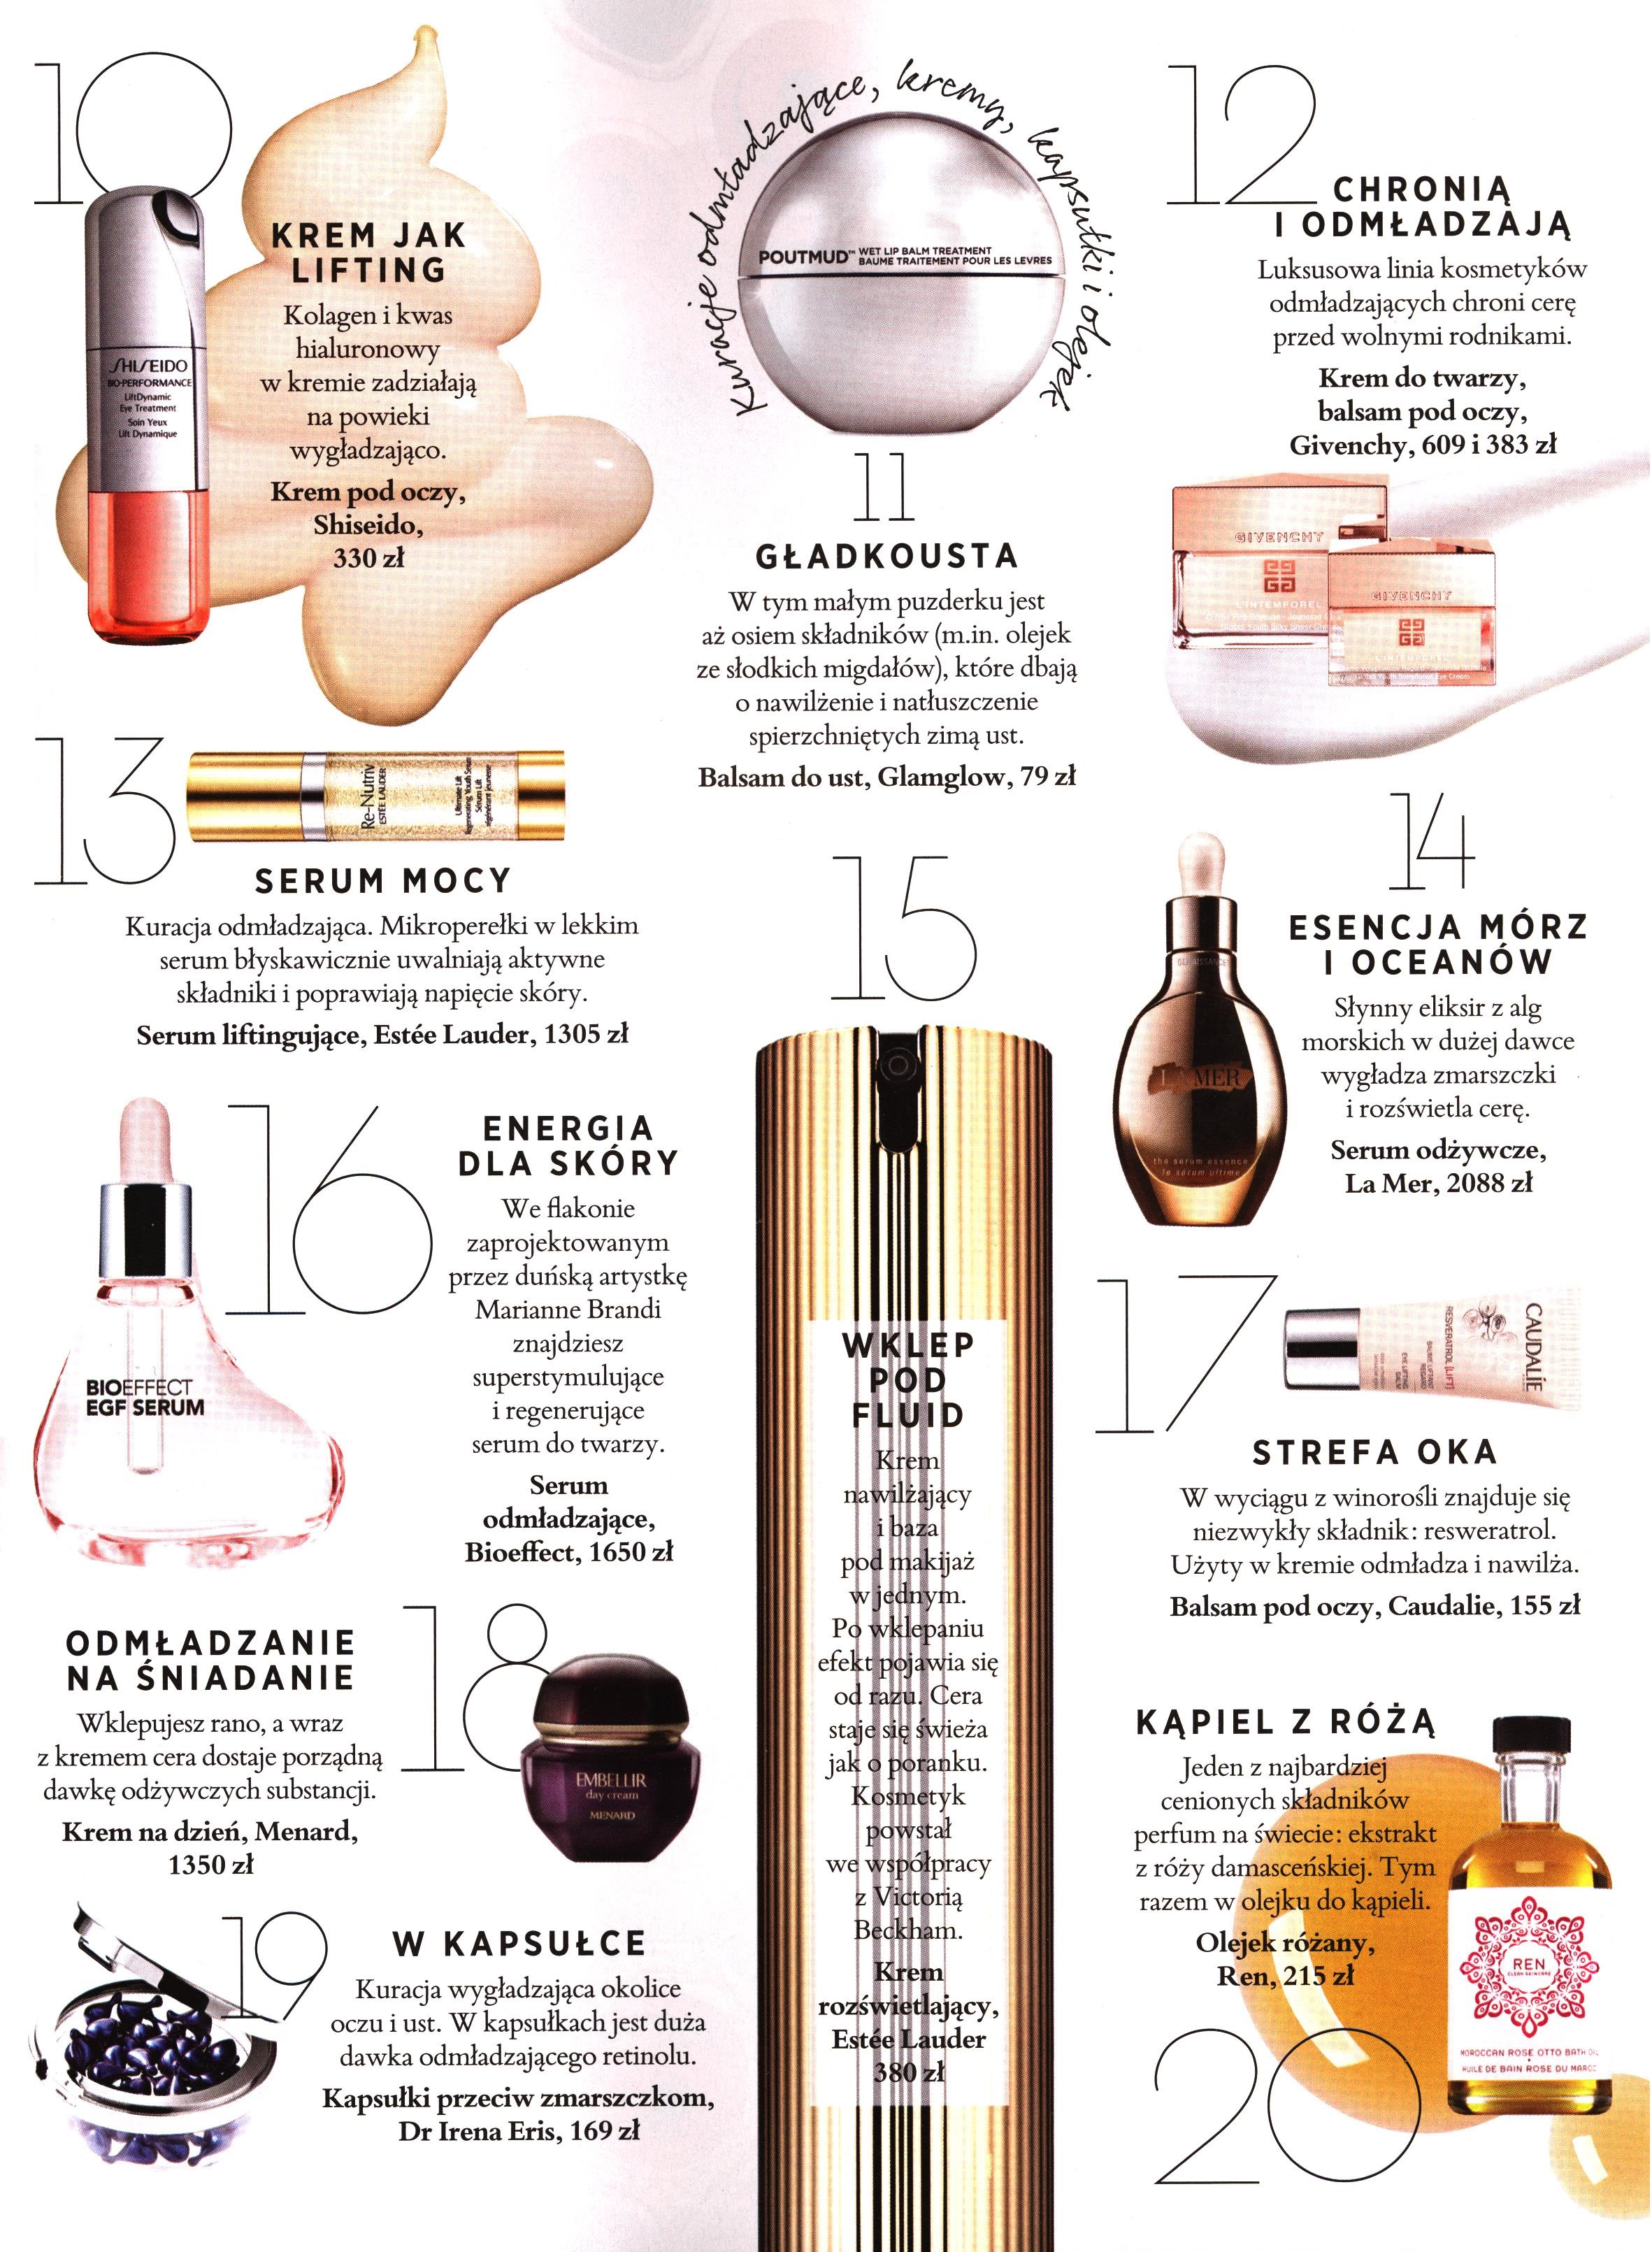 2016-12-harpers-bazaar_bioeffect-egf-serum-limited-edition-menard-embellir-day-cream